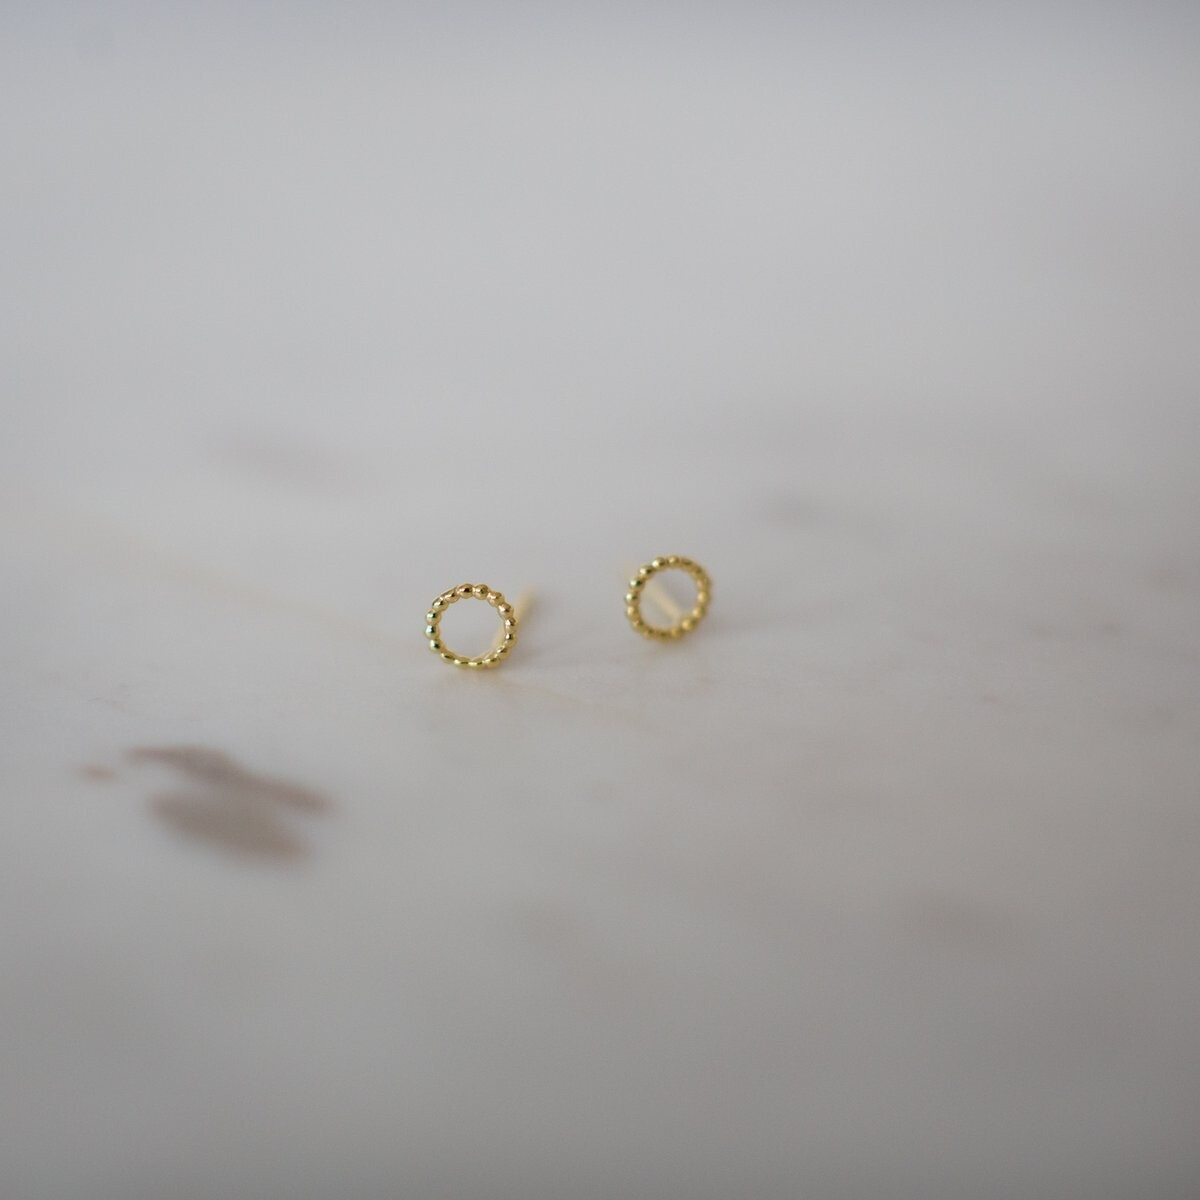 Dotty Oh Stud Earrings - 14kt Gold Plated